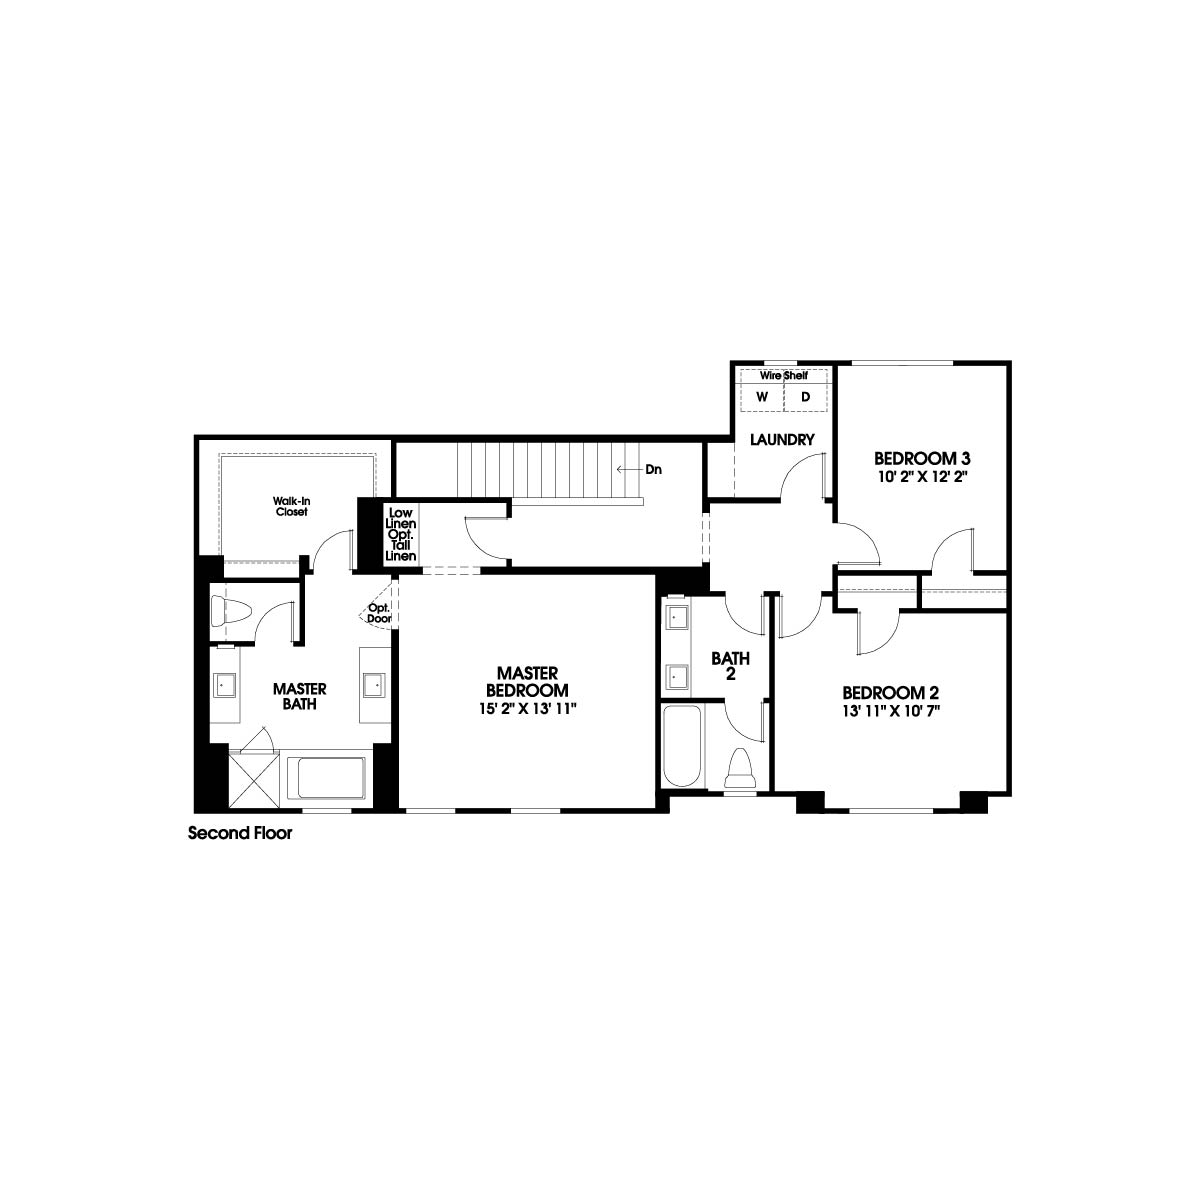 Residence 5 holiday at new haven in ontario ranch for Holiday home builders floor plans